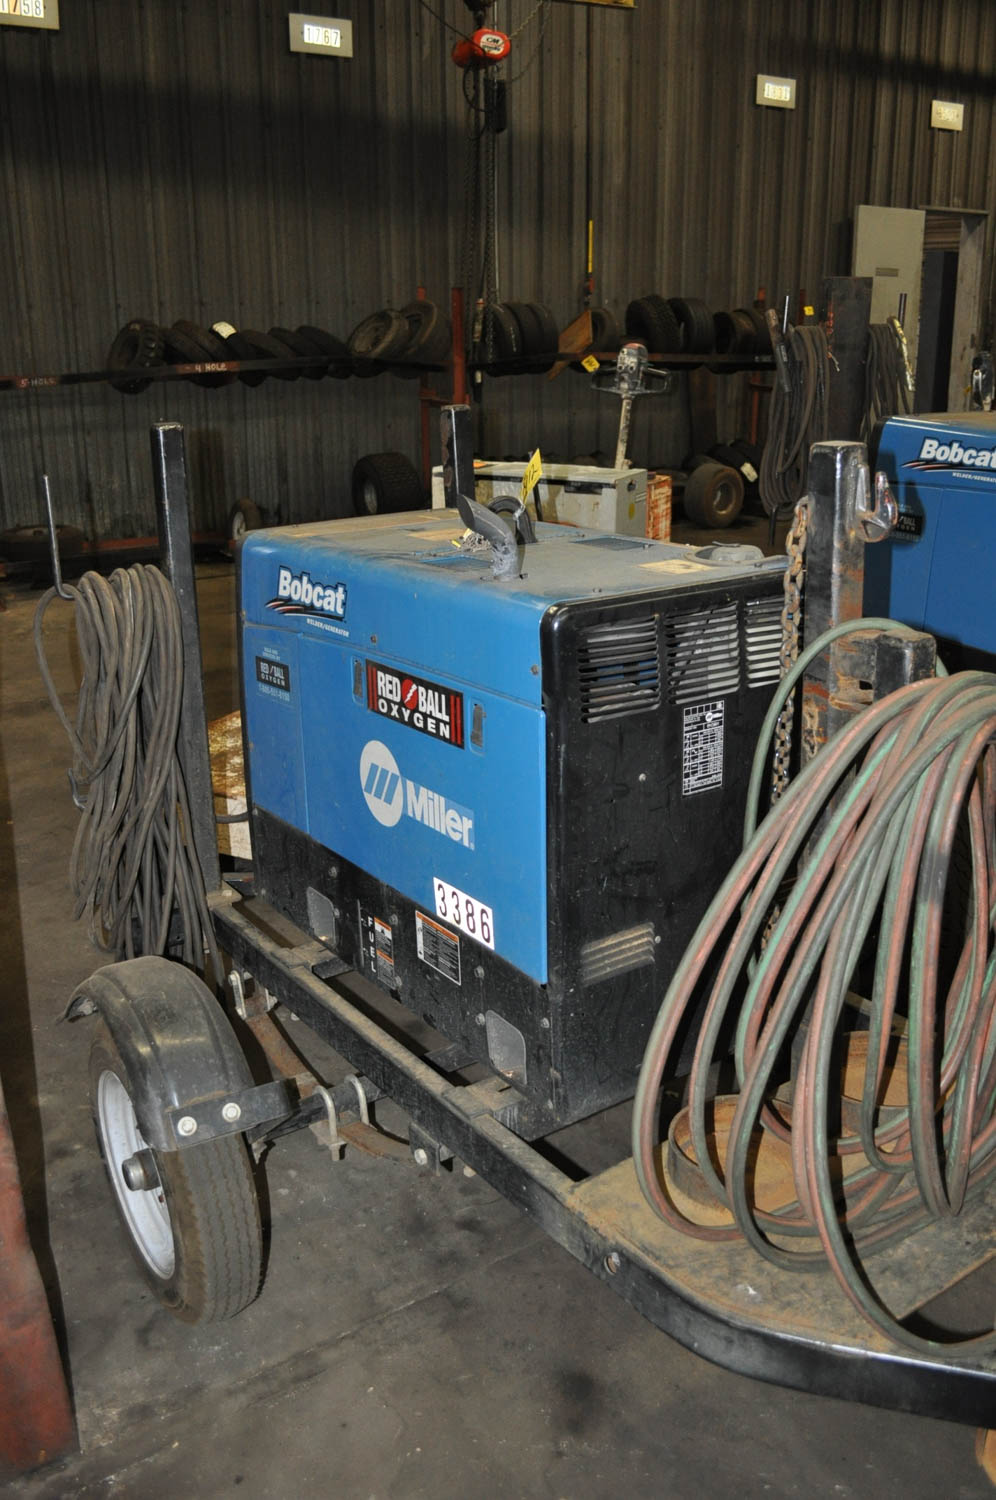 Kohler Engine Efi in addition Lot 25aea37c F65a 40cf B75b A54c015afaab together with Ca18det Wiring Diagram together with RC4d 6921 as well Gas Powered Welders. on miller bobcat 250 voltage regulator